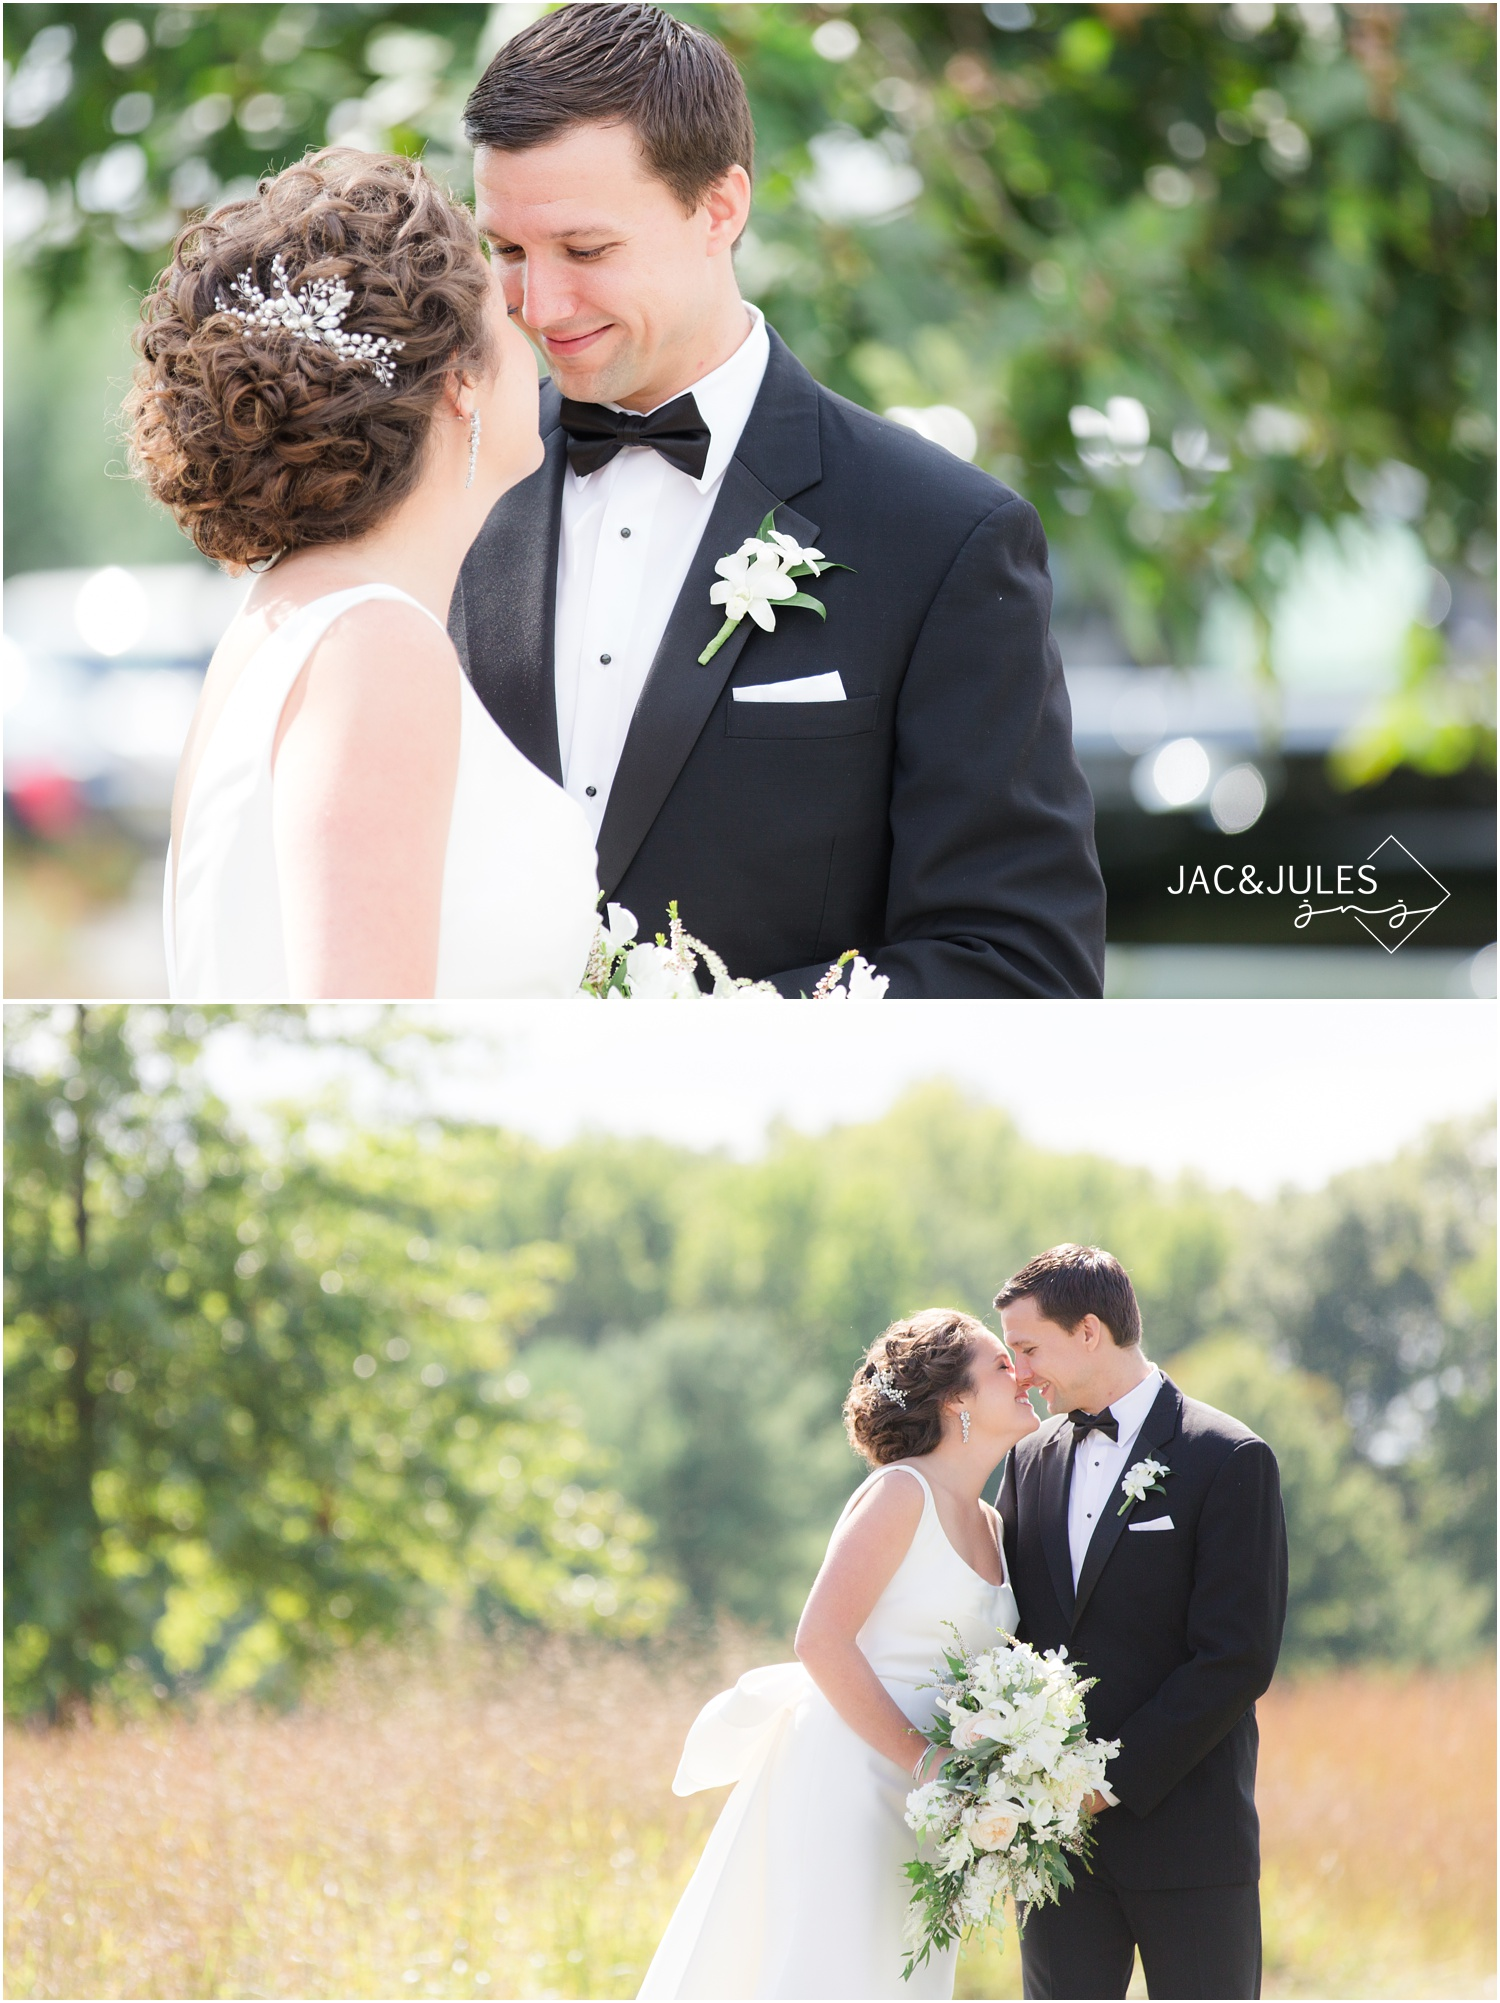 romantic bride and groom portraits at eagle oaks golf and country club in wall, nj.